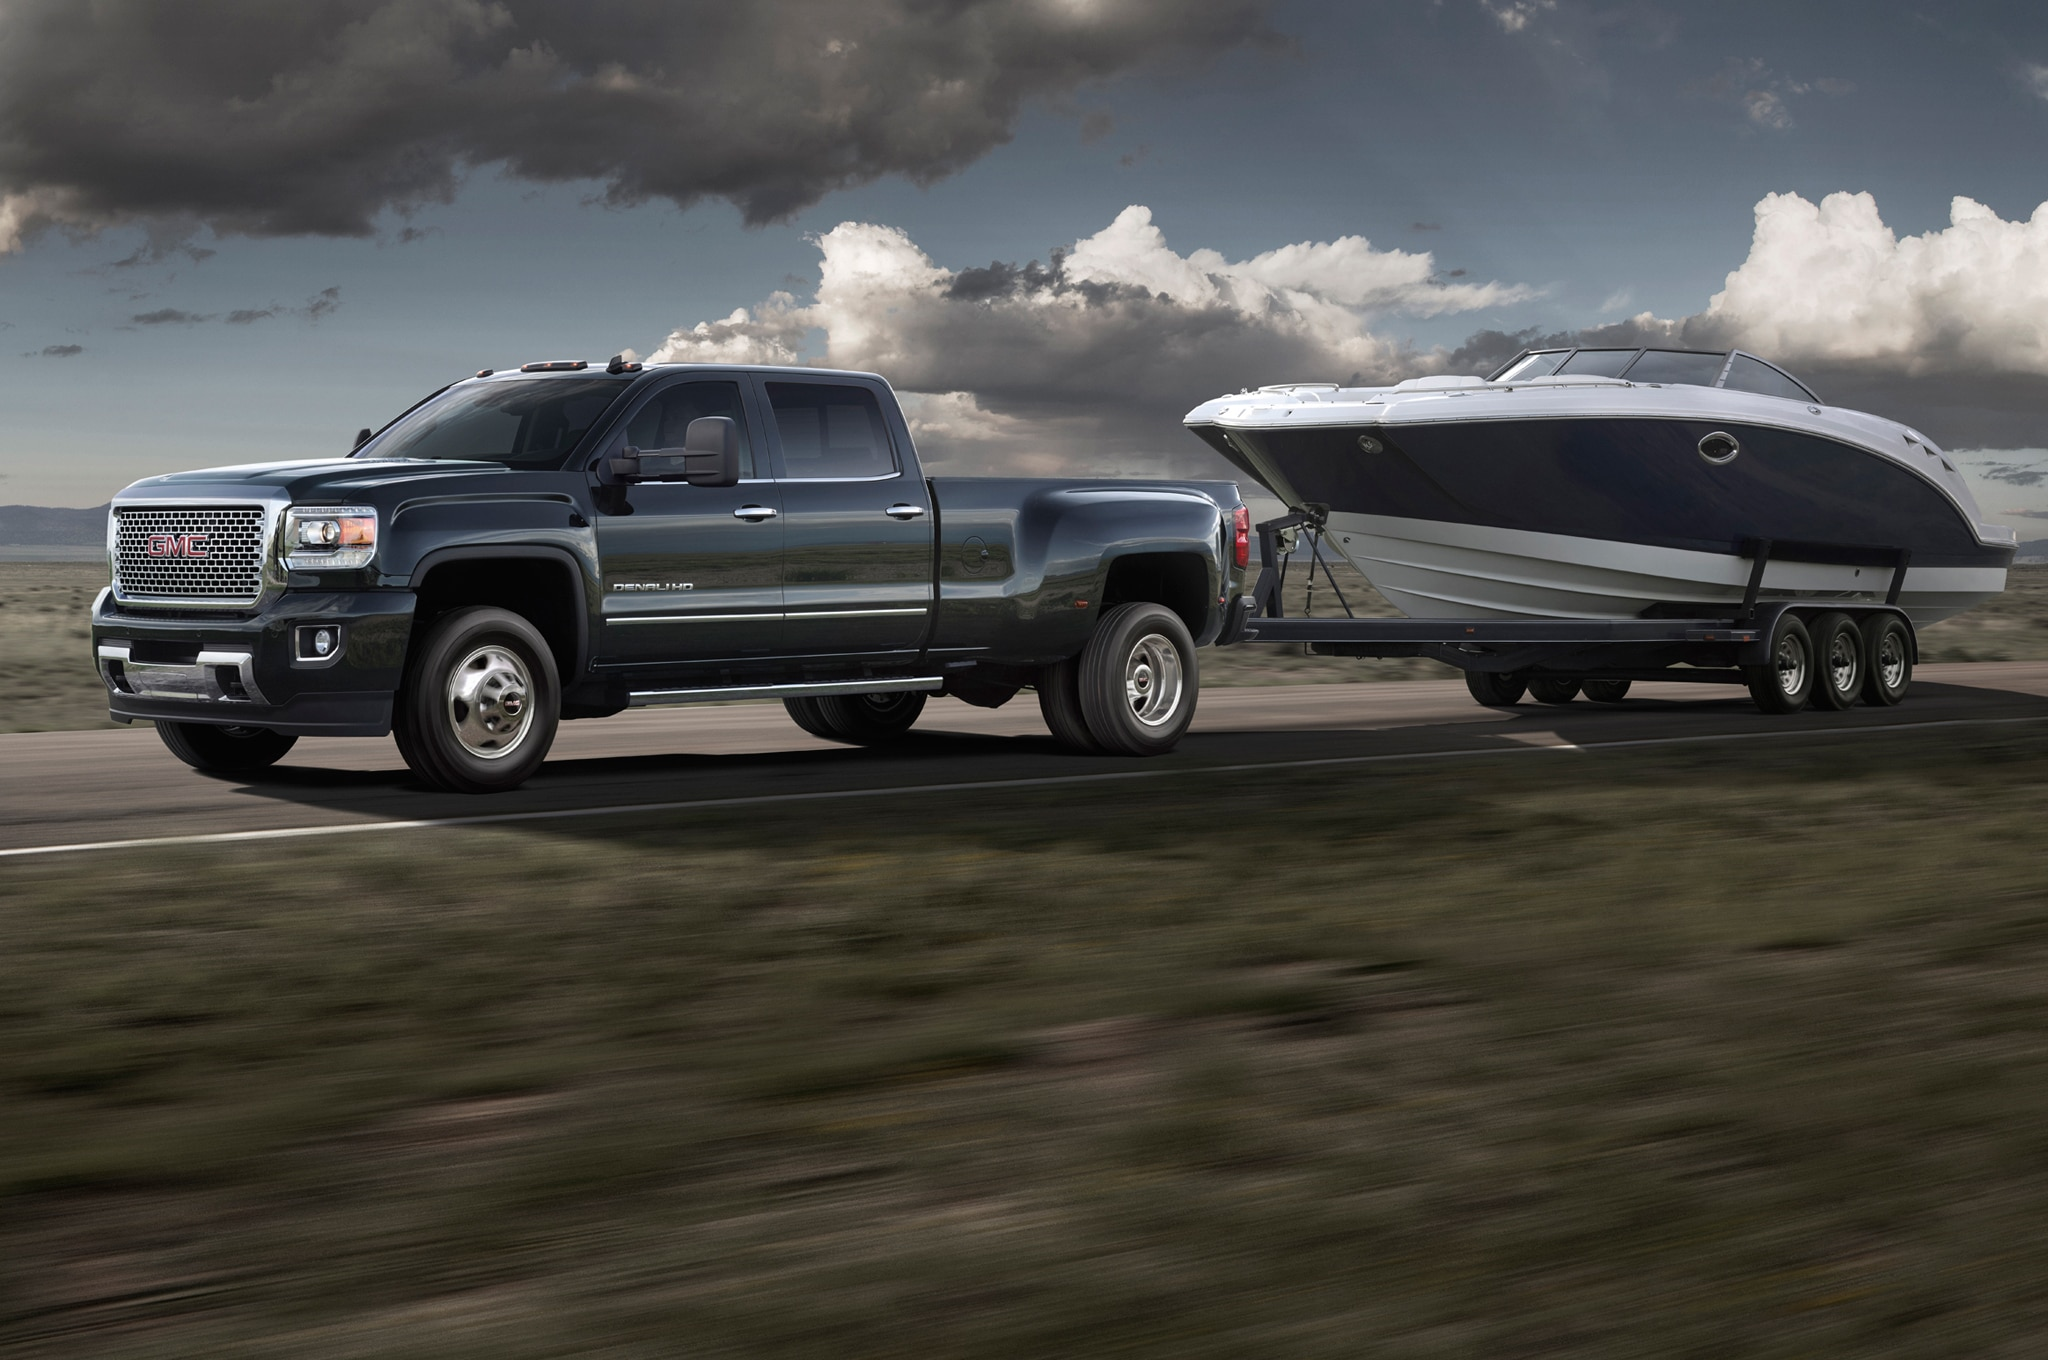 2015 GMC Sierra 3500HD Denali front view in motion